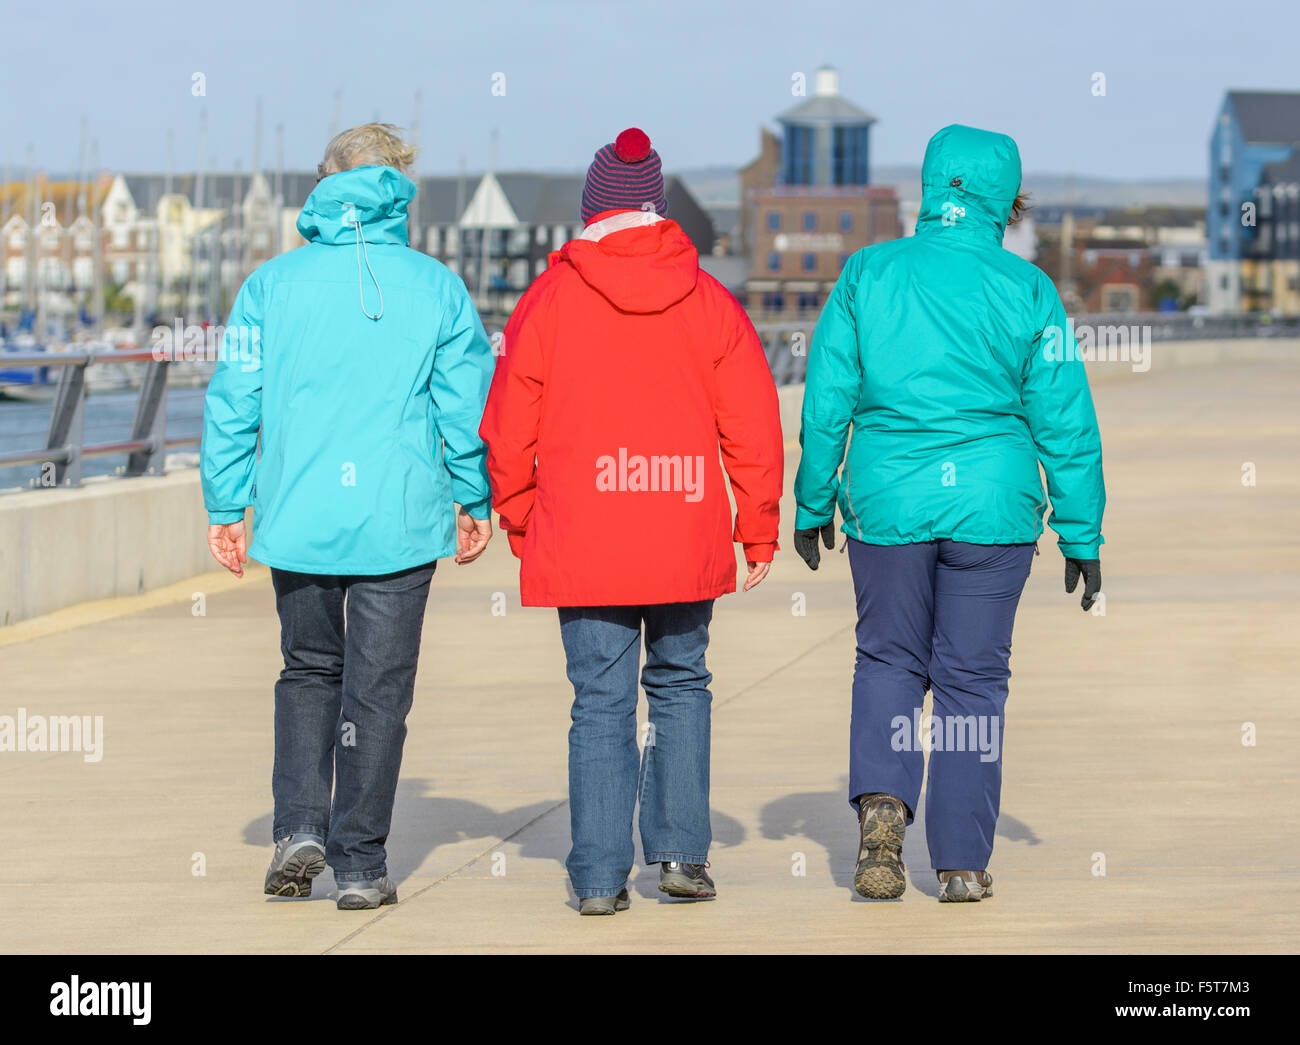 3 women wearing coats, walking away on a cold damp day in Winter in the UK. - Stock Image